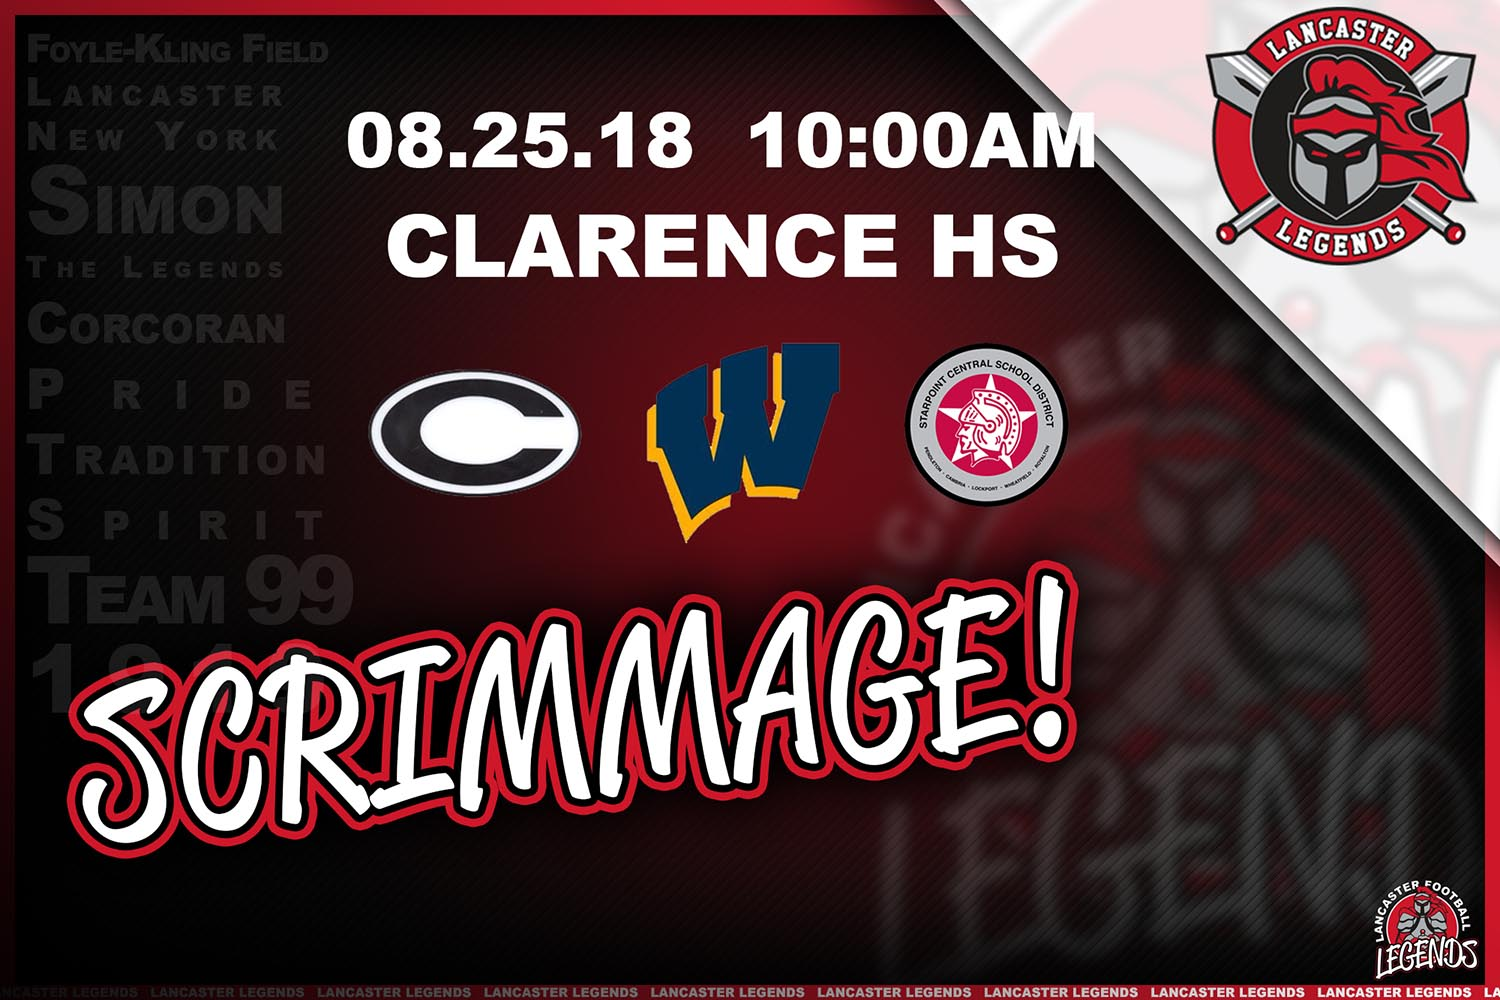 Scrimmage at Clarence HS